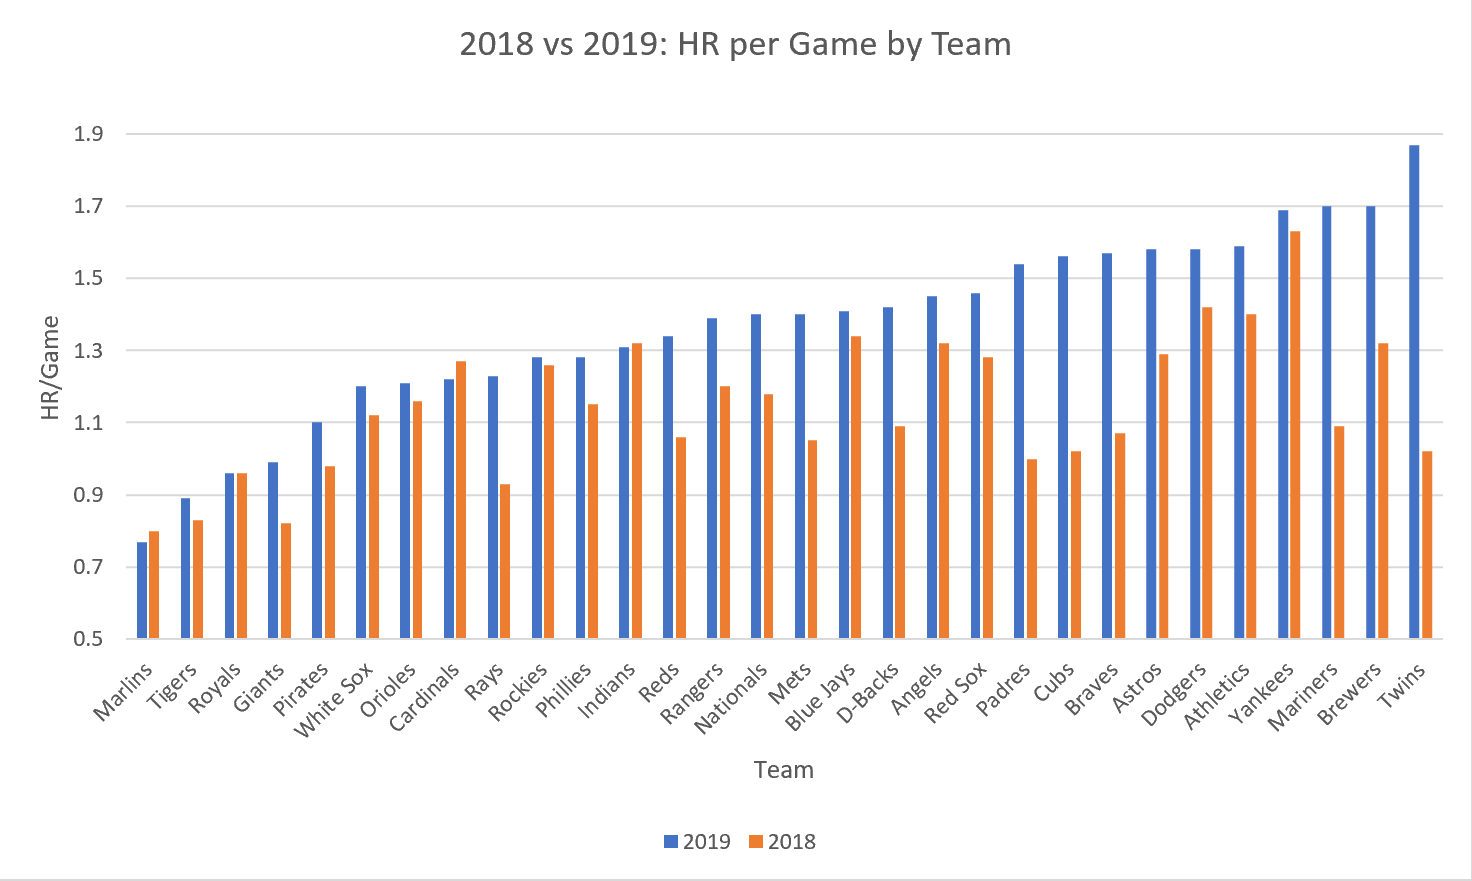 Home Runs per Game by Team